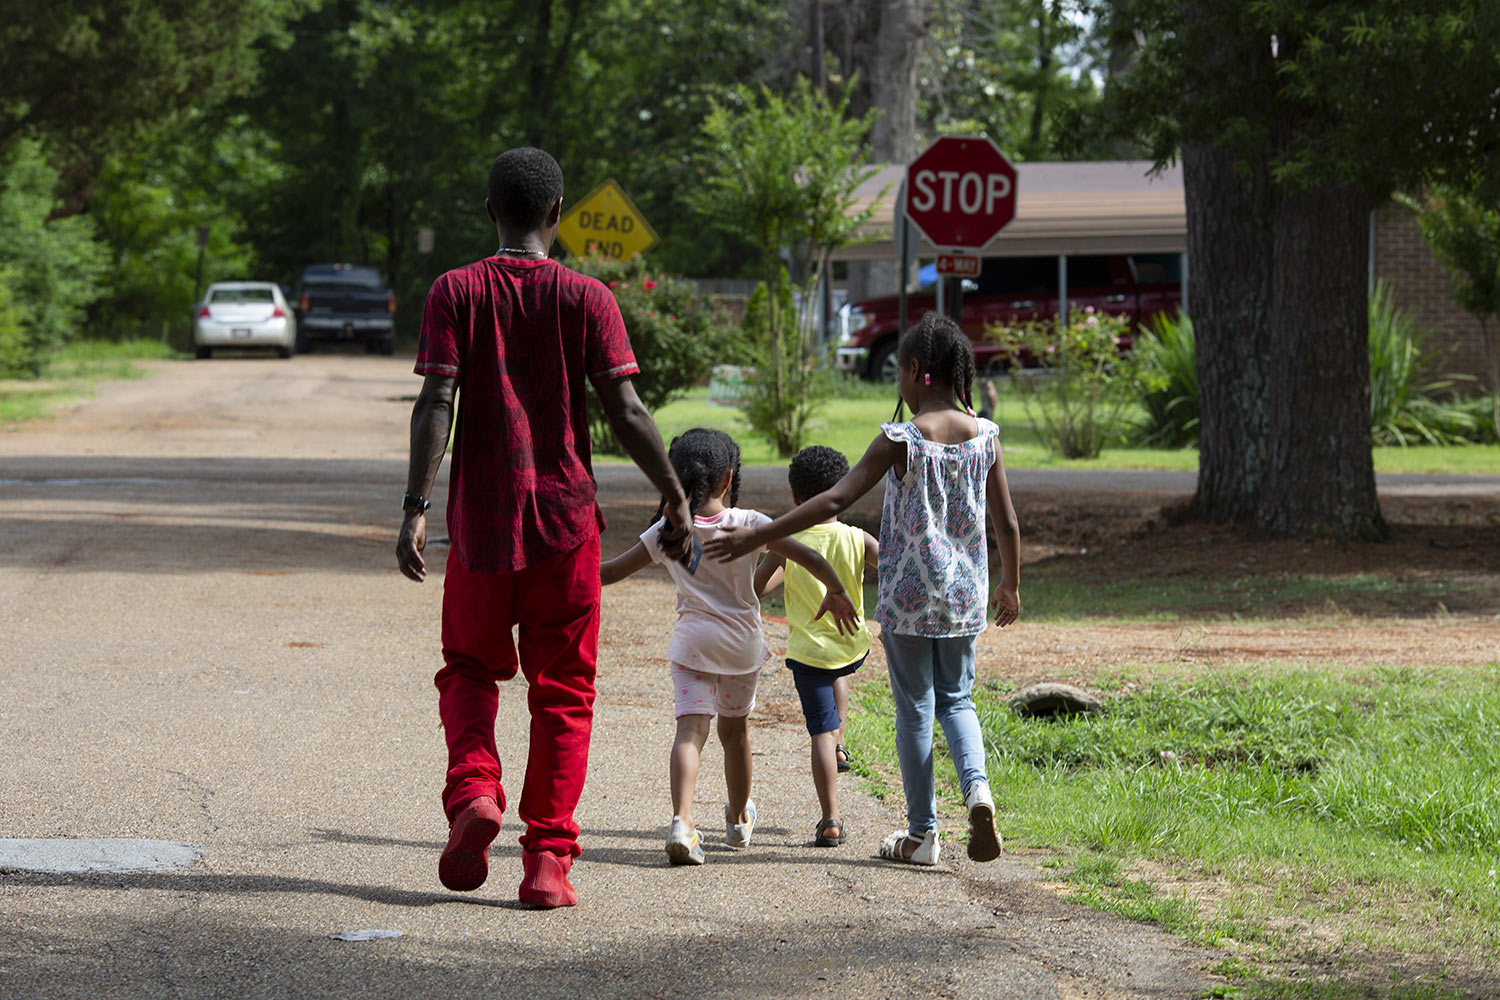 Joshua K. Love walks home with his nieces and nephew after a game of basketball in Greenwood, Miss., Saturday, June 8, 2019. (AP Photo/Wong Maye-E)